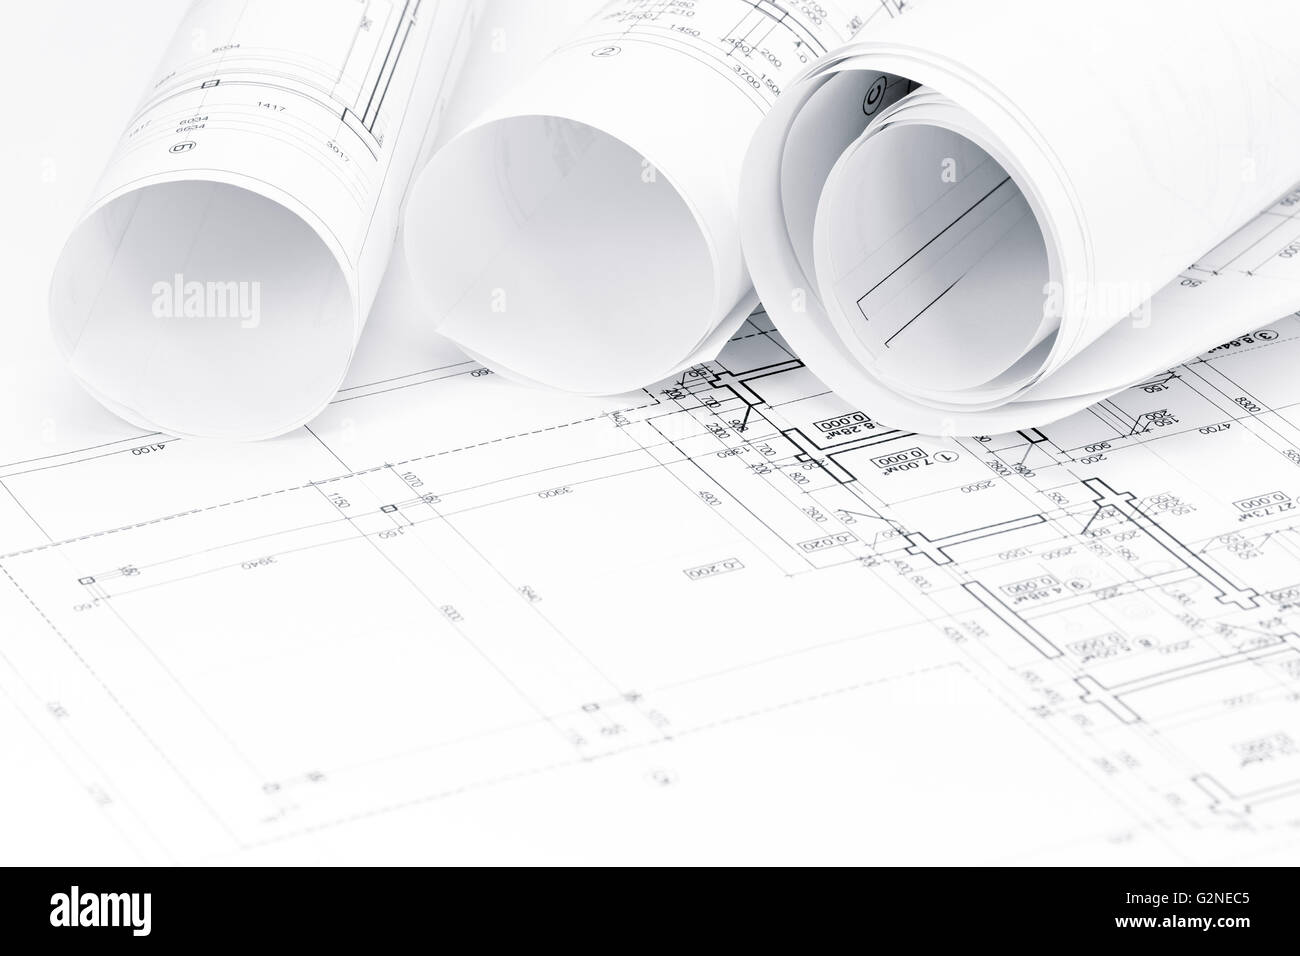 Architectural Drawing Background architectural background with floor plans and rolls of technical